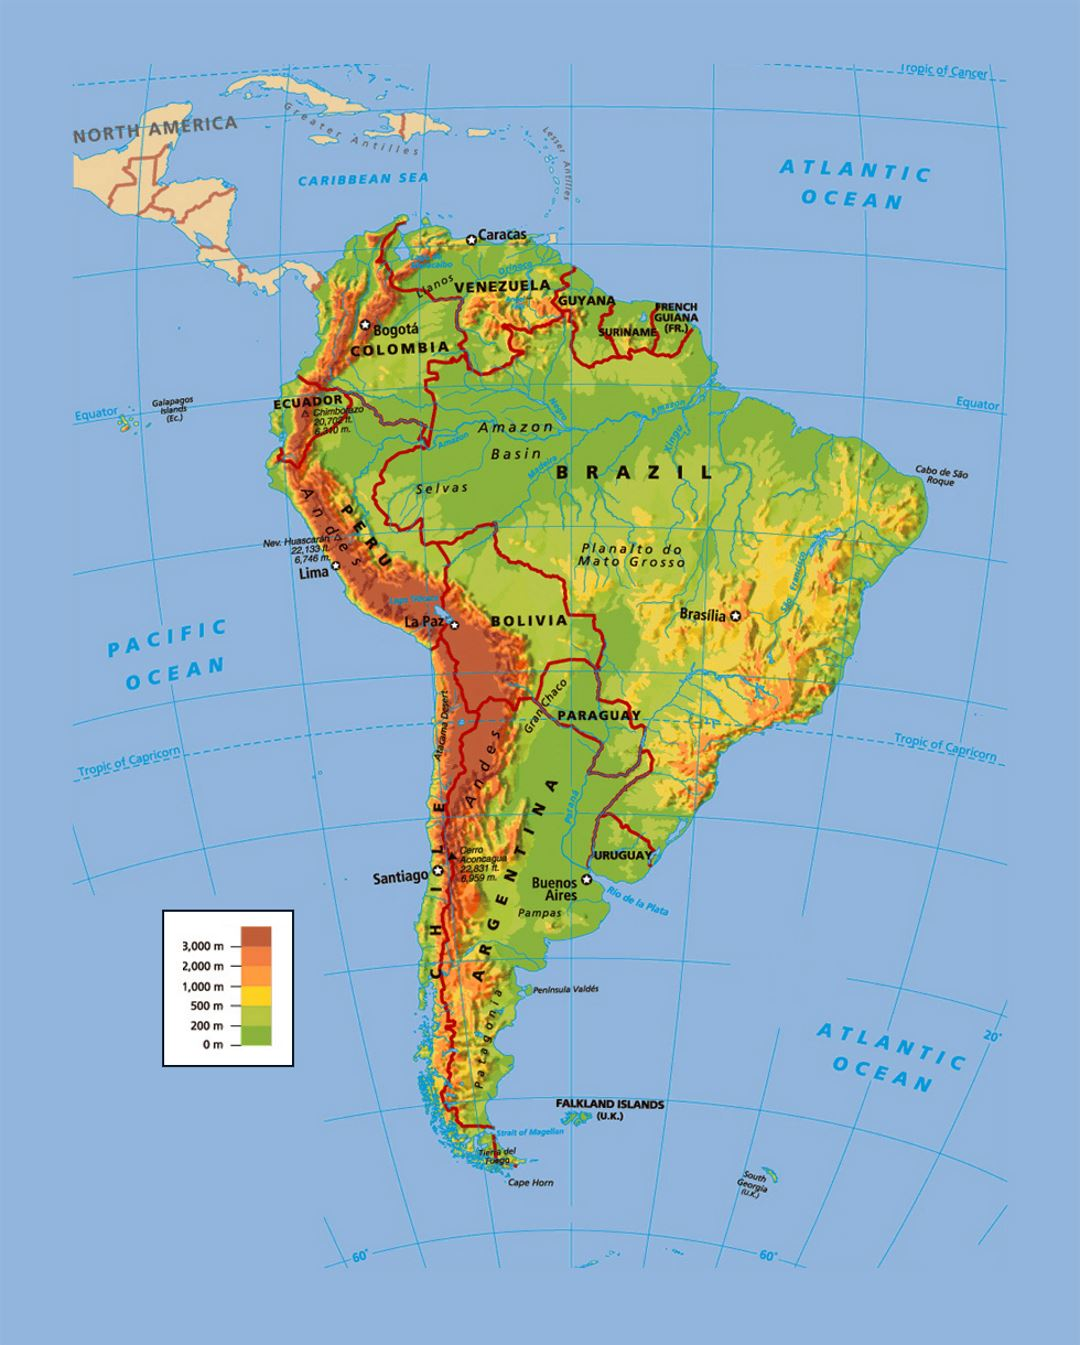 Political and physical map of South America | South America ... on peopling of the americas, mercator projection of the americas, geological map of the americas, language map of the americas, physical map southern africa, physical features of america, physical map china, world map of the americas, outline map of the americas, physical map sub-saharan africa, historical map of the americas, topographic map of the americas,